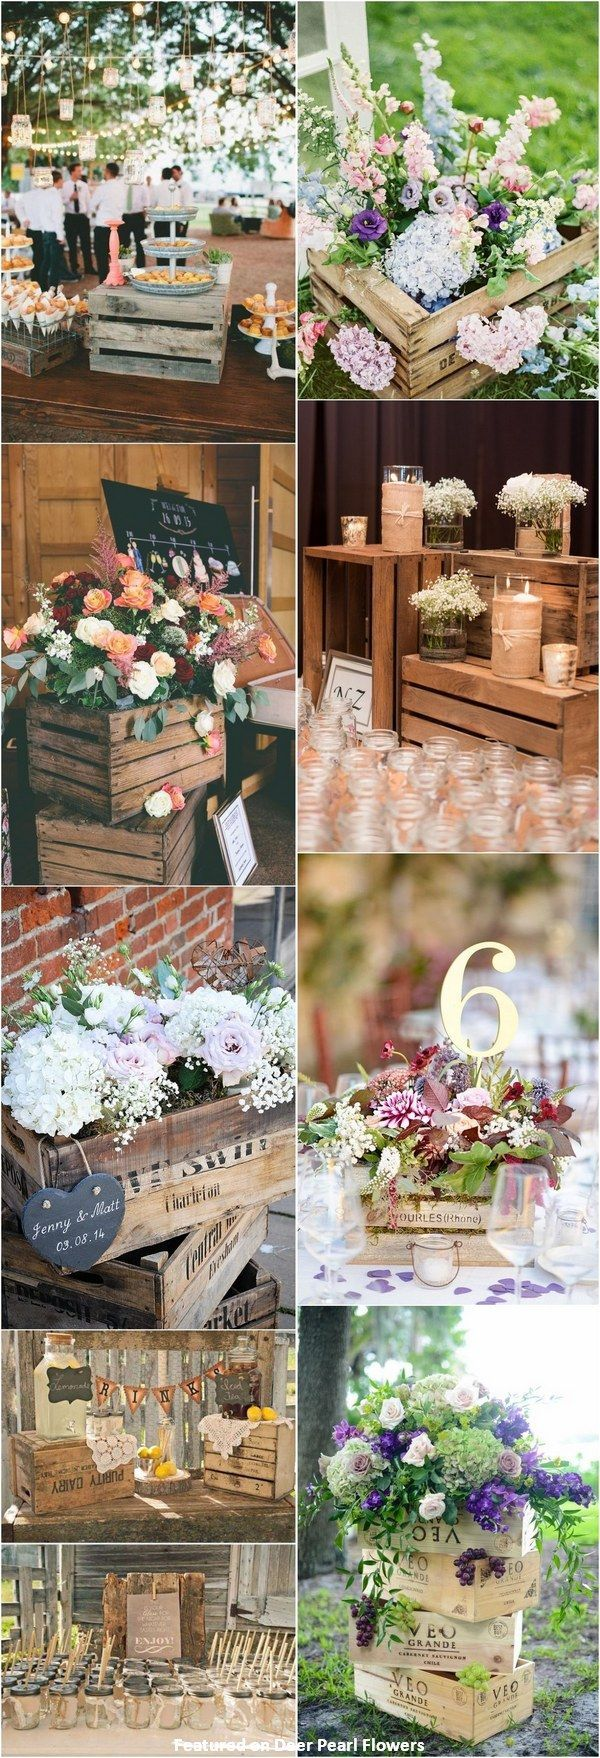 Country wedding decoration ideas  Rustic country wooden crate wedding decor ideas